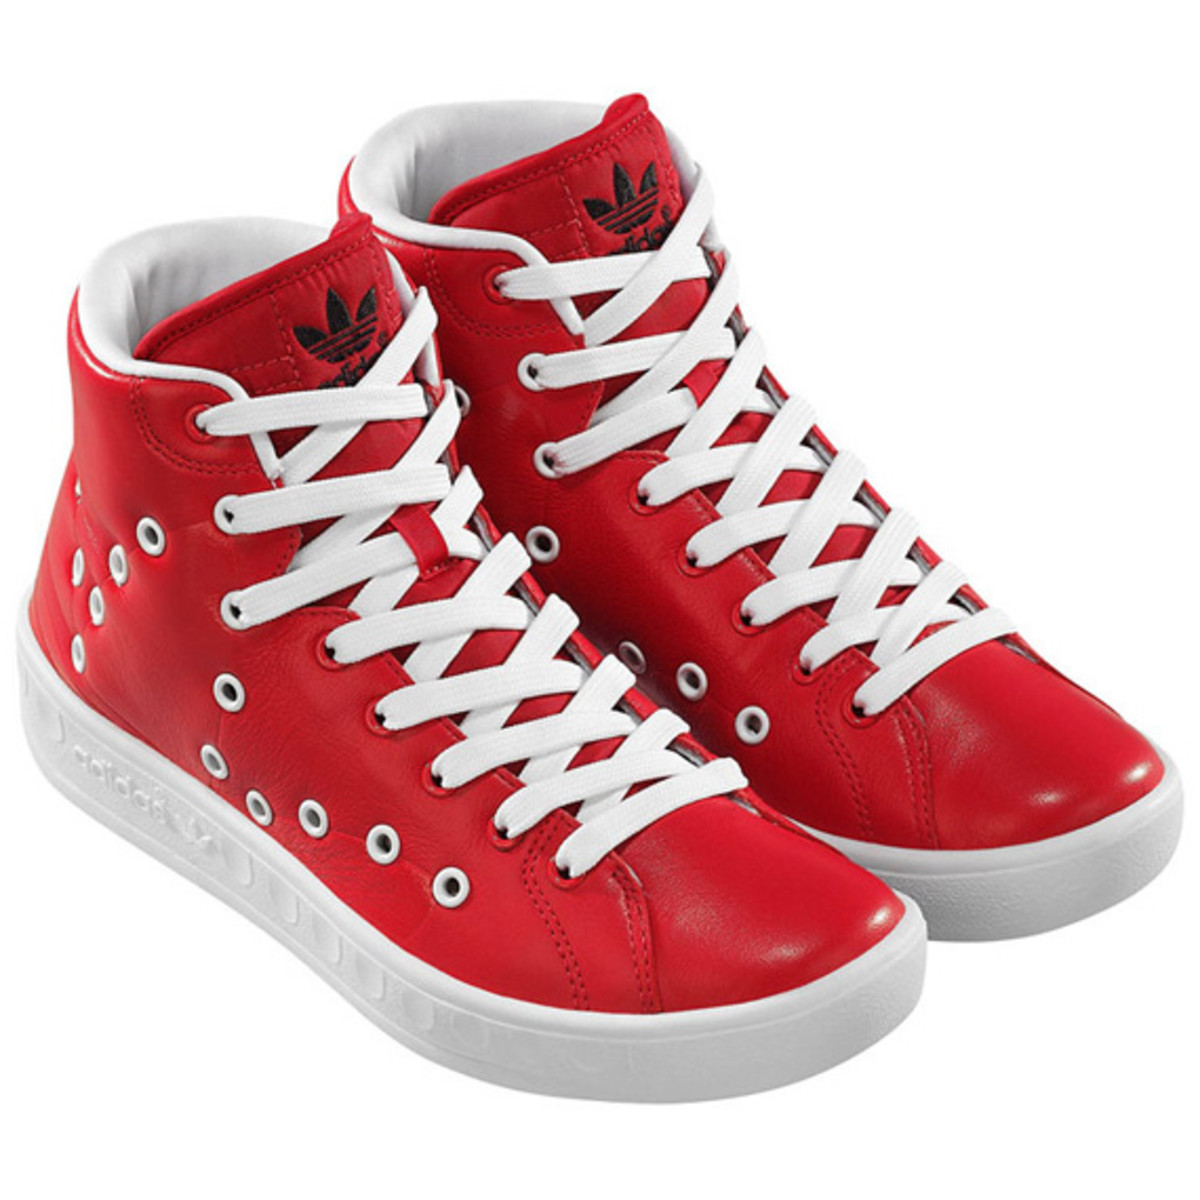 adidas-originals-fw2010-footwear-relaces-14